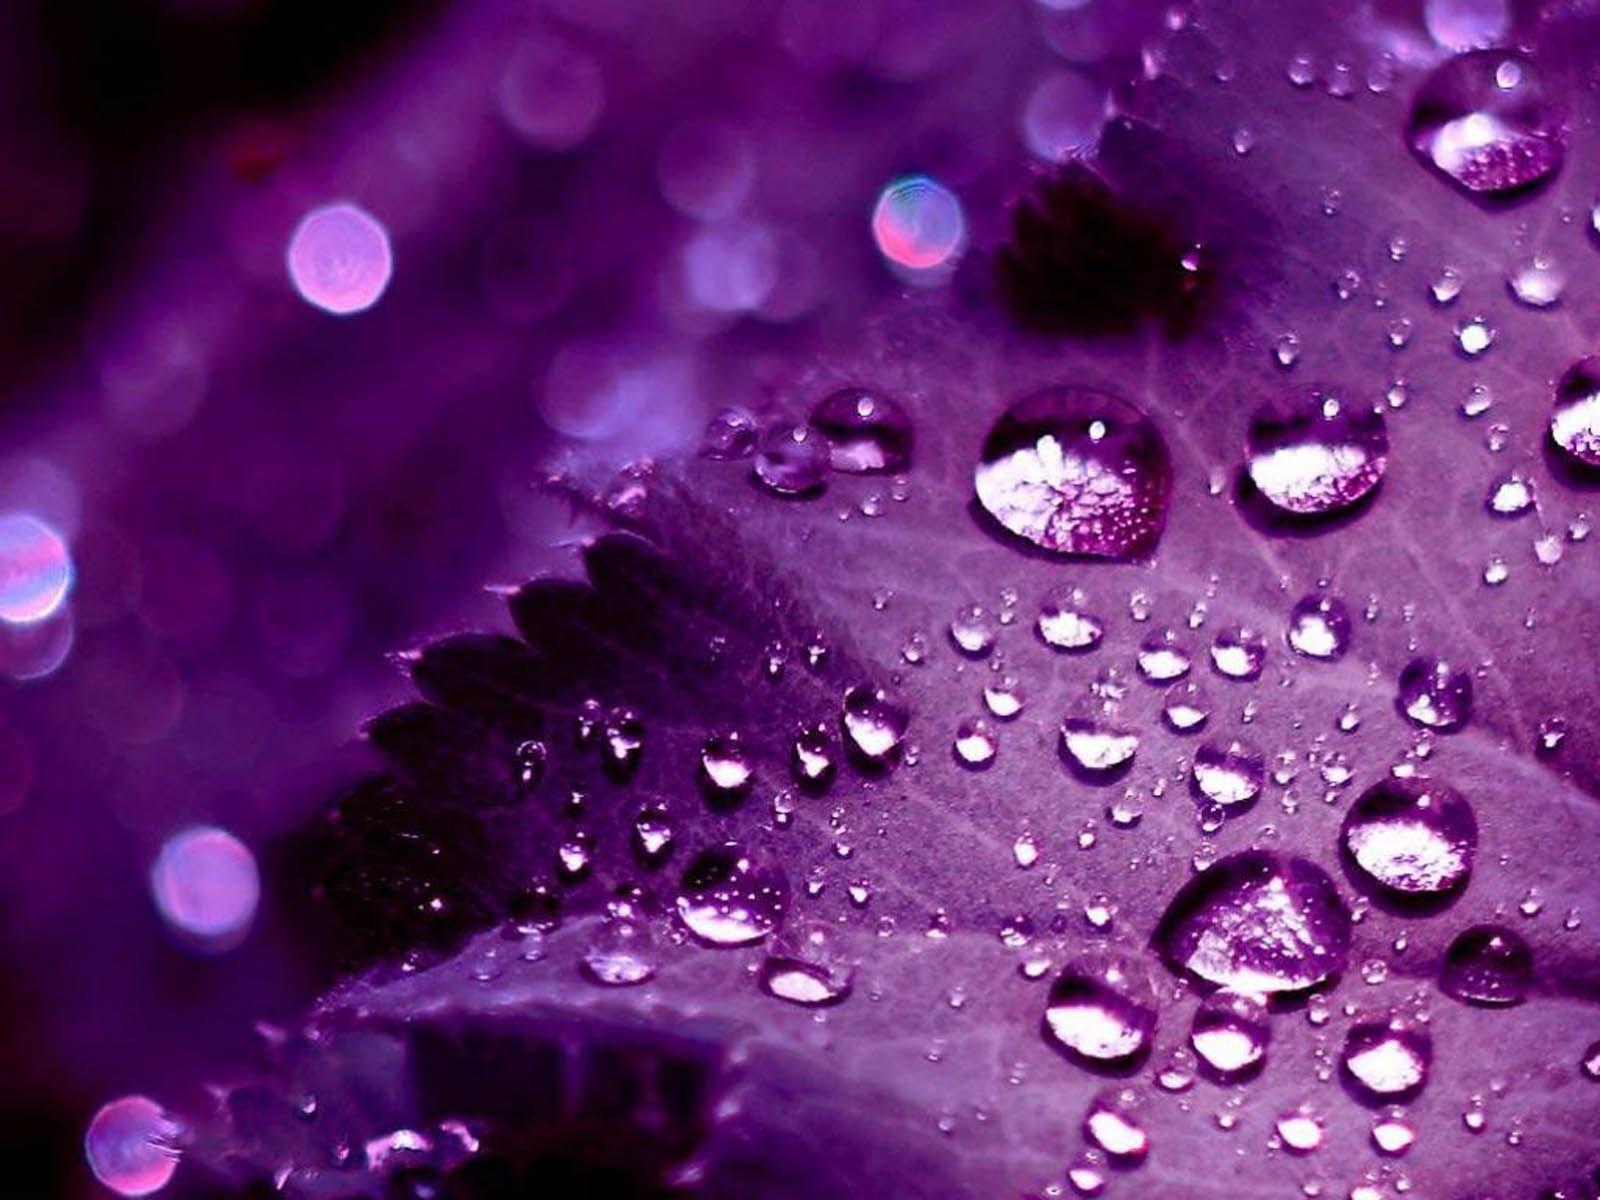 Cool Purple Backgrounds Picture Hd Wallpaper 68697 Label